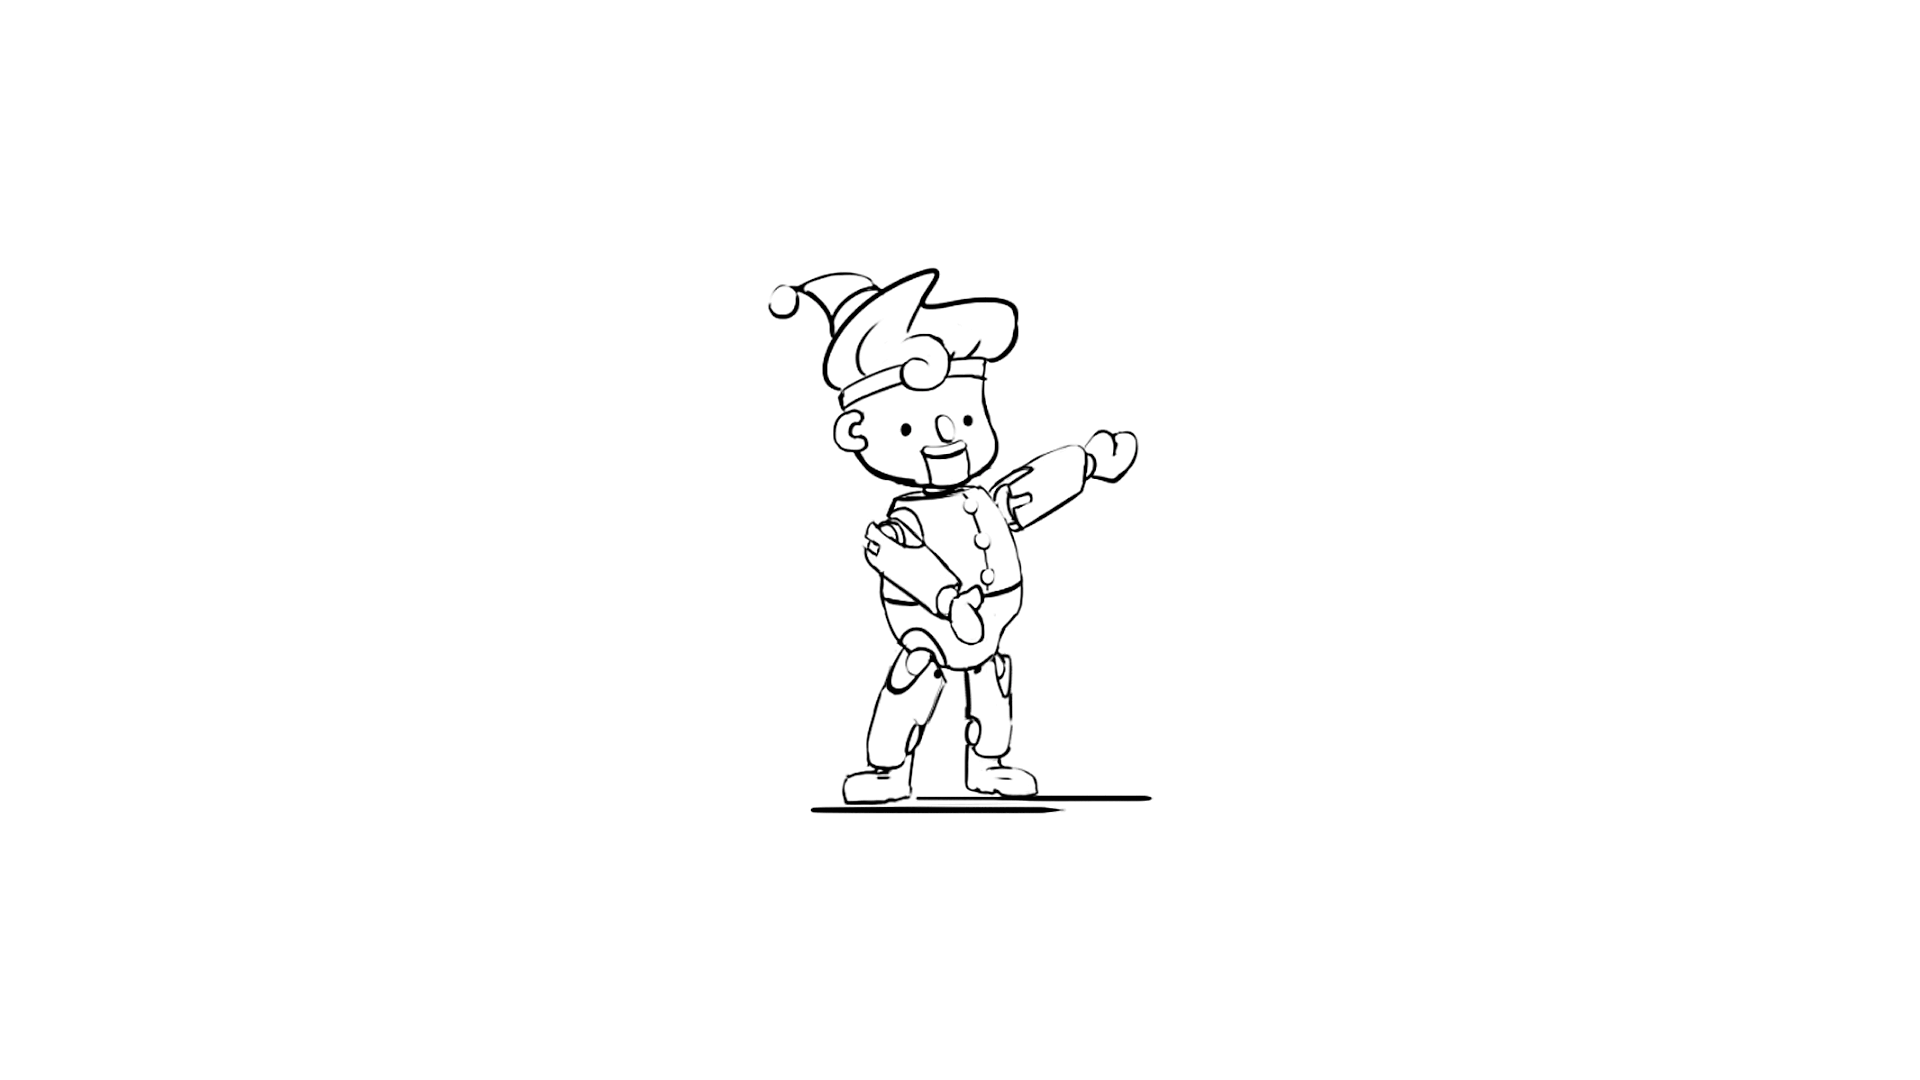 Character Design sketch of a stylized Christmas Elf